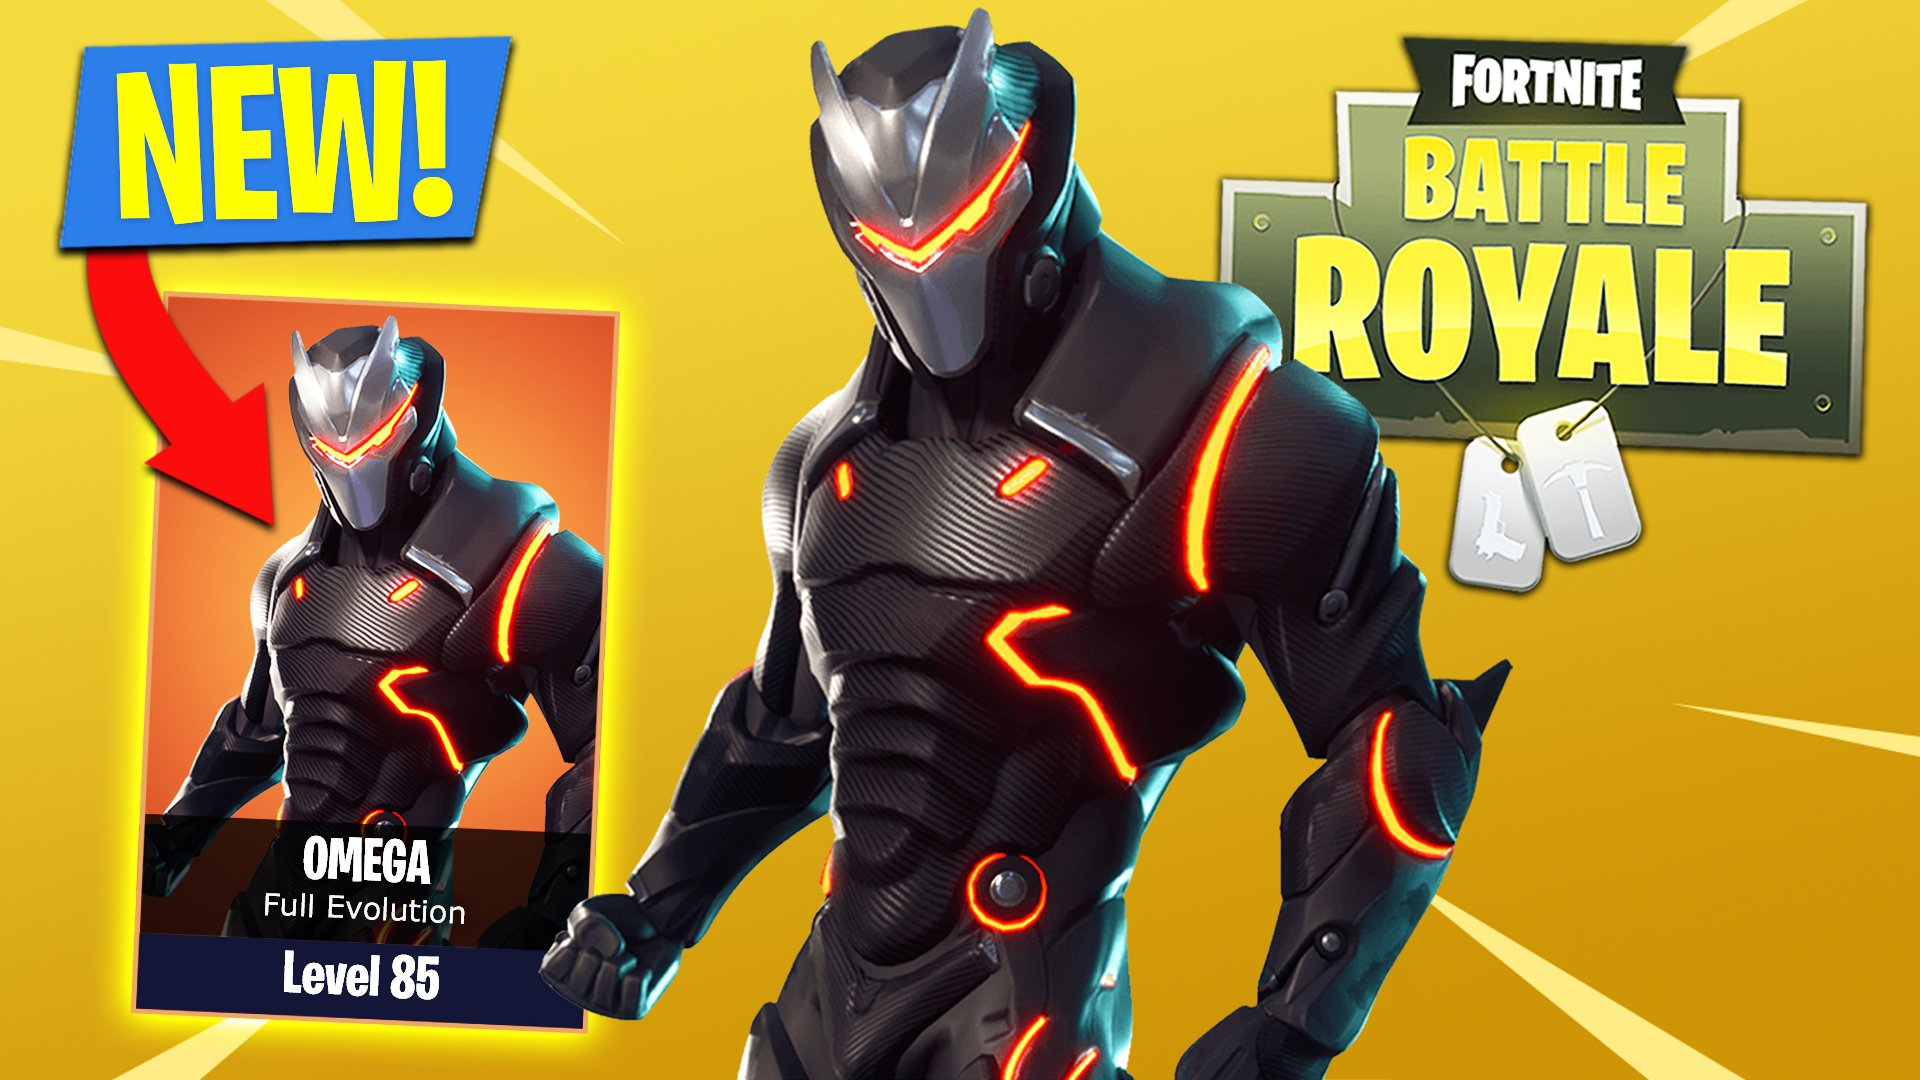 Typical Gamer On Twitter Fortnite Season 4 Upgrading Omega Armor Watch It Live Here On Youtube Https T Co Qvejmalw6k